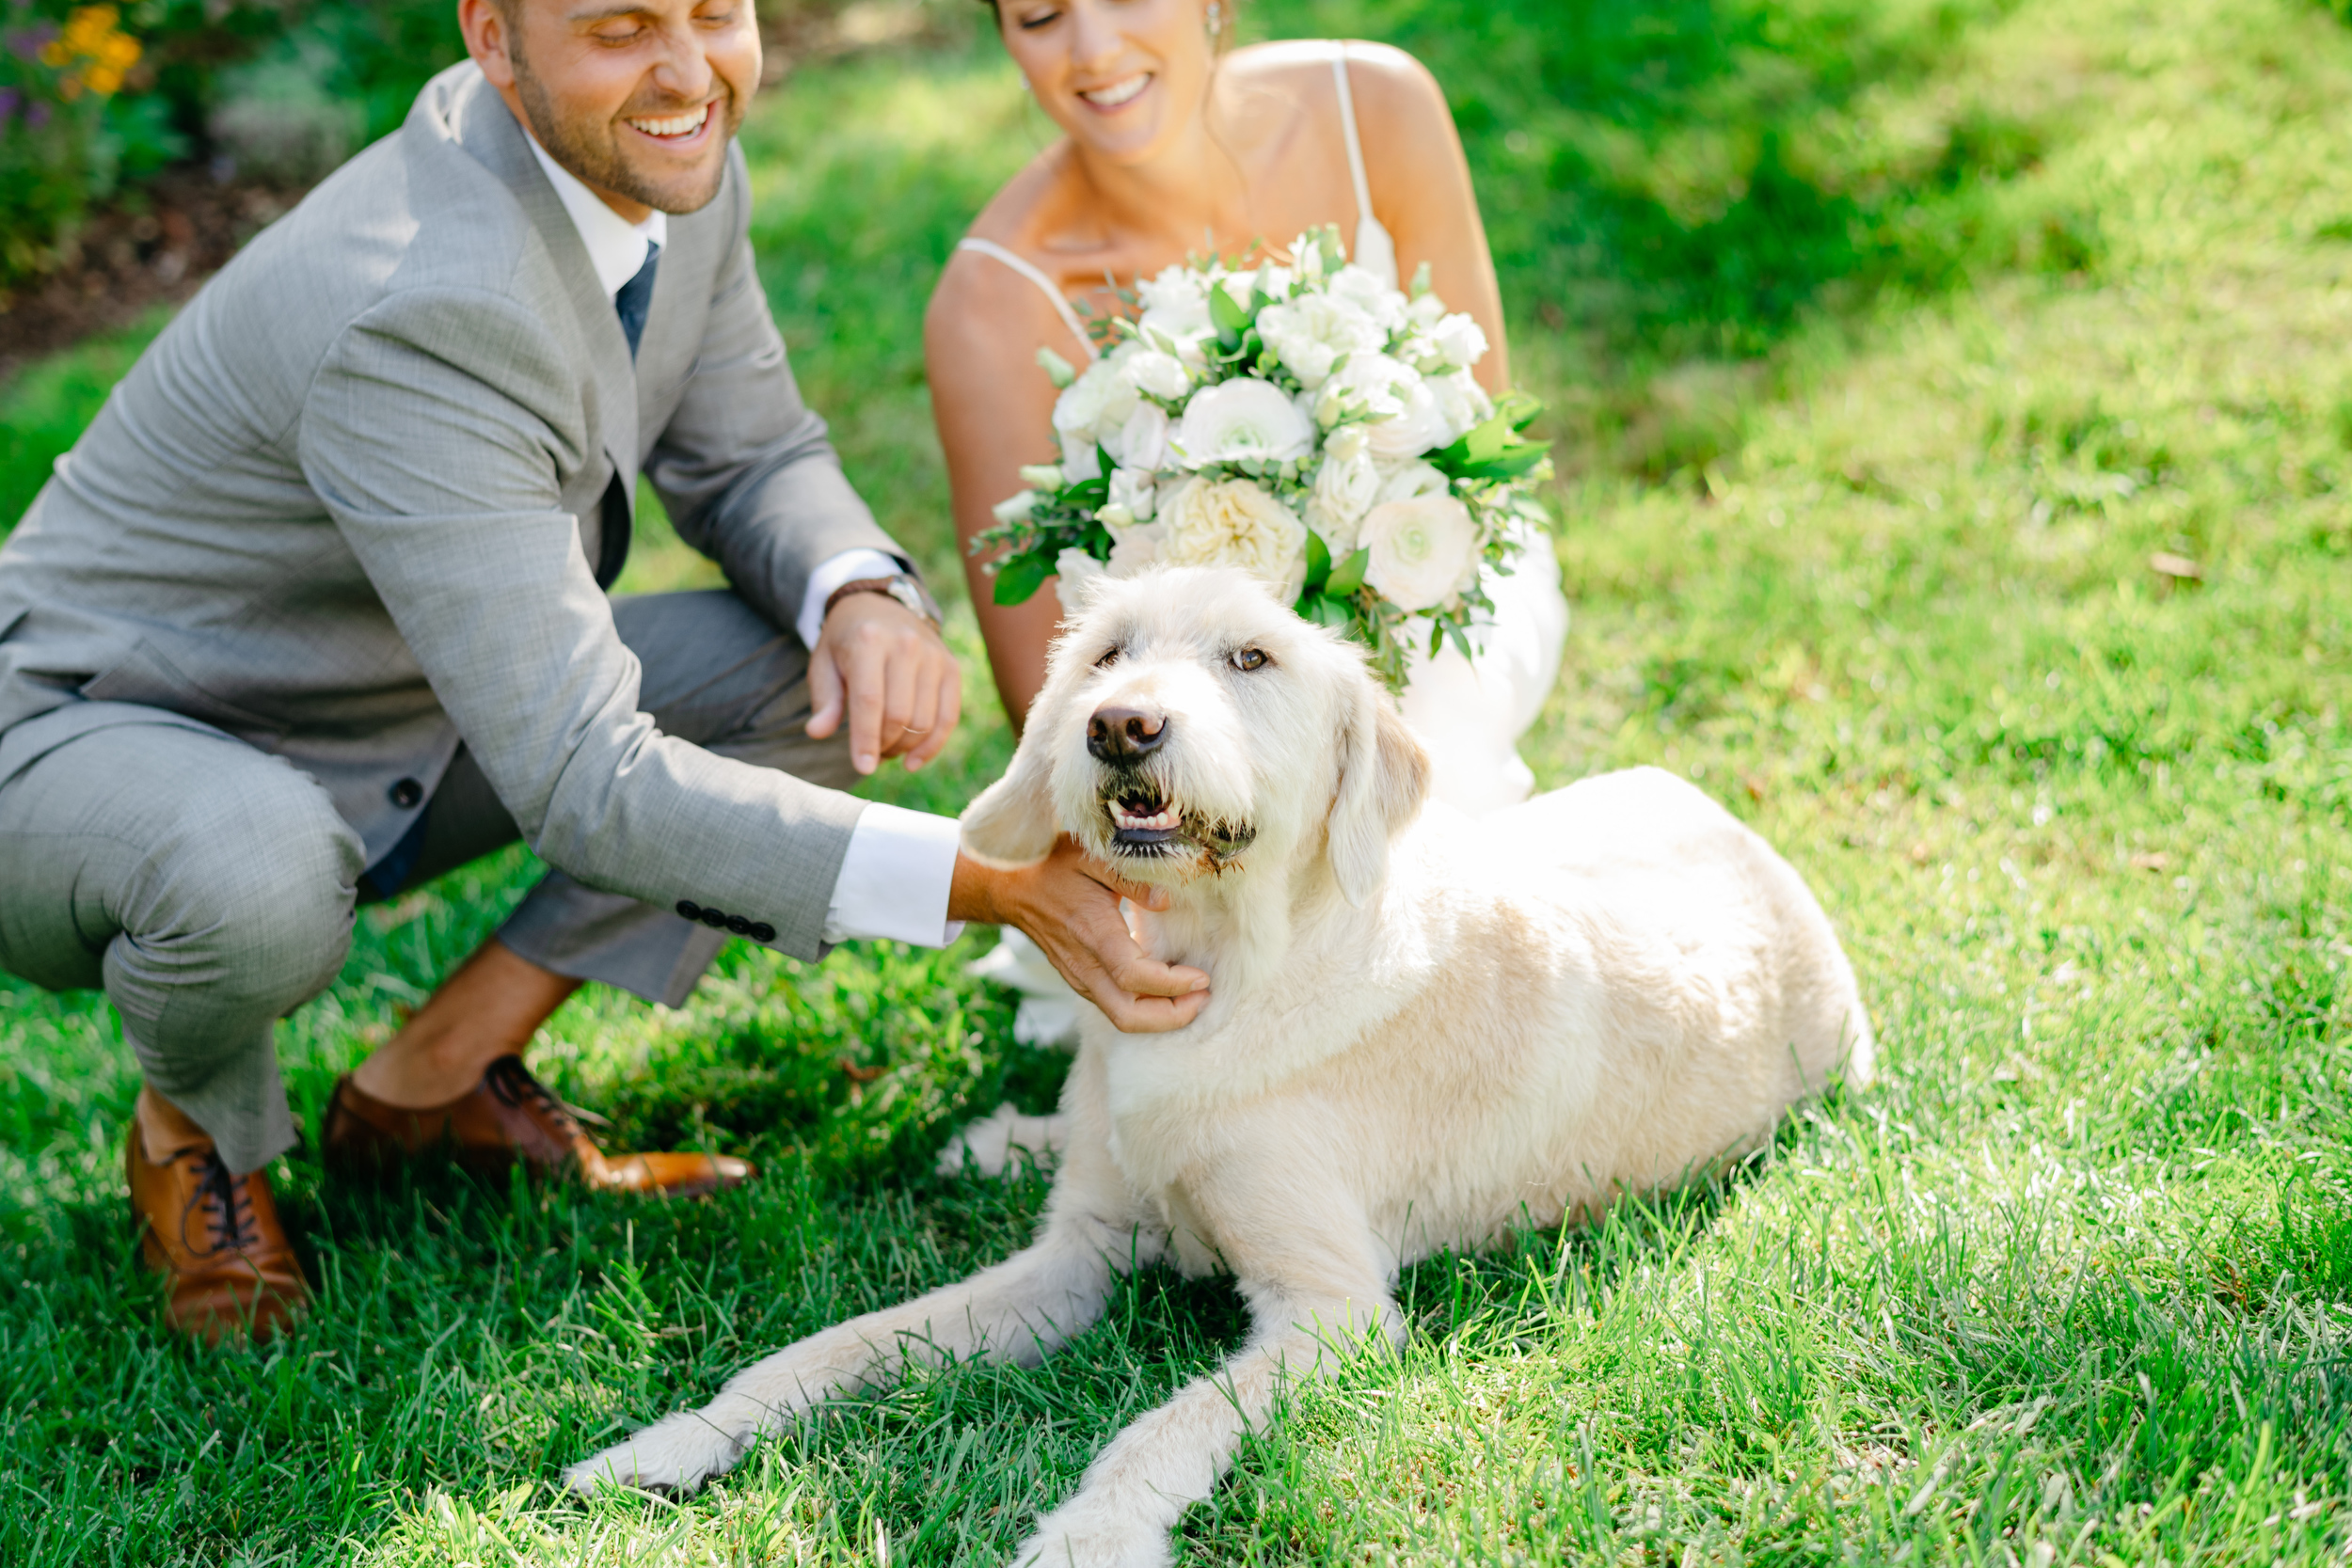 classic portrait with good looking bride and groom and their dog